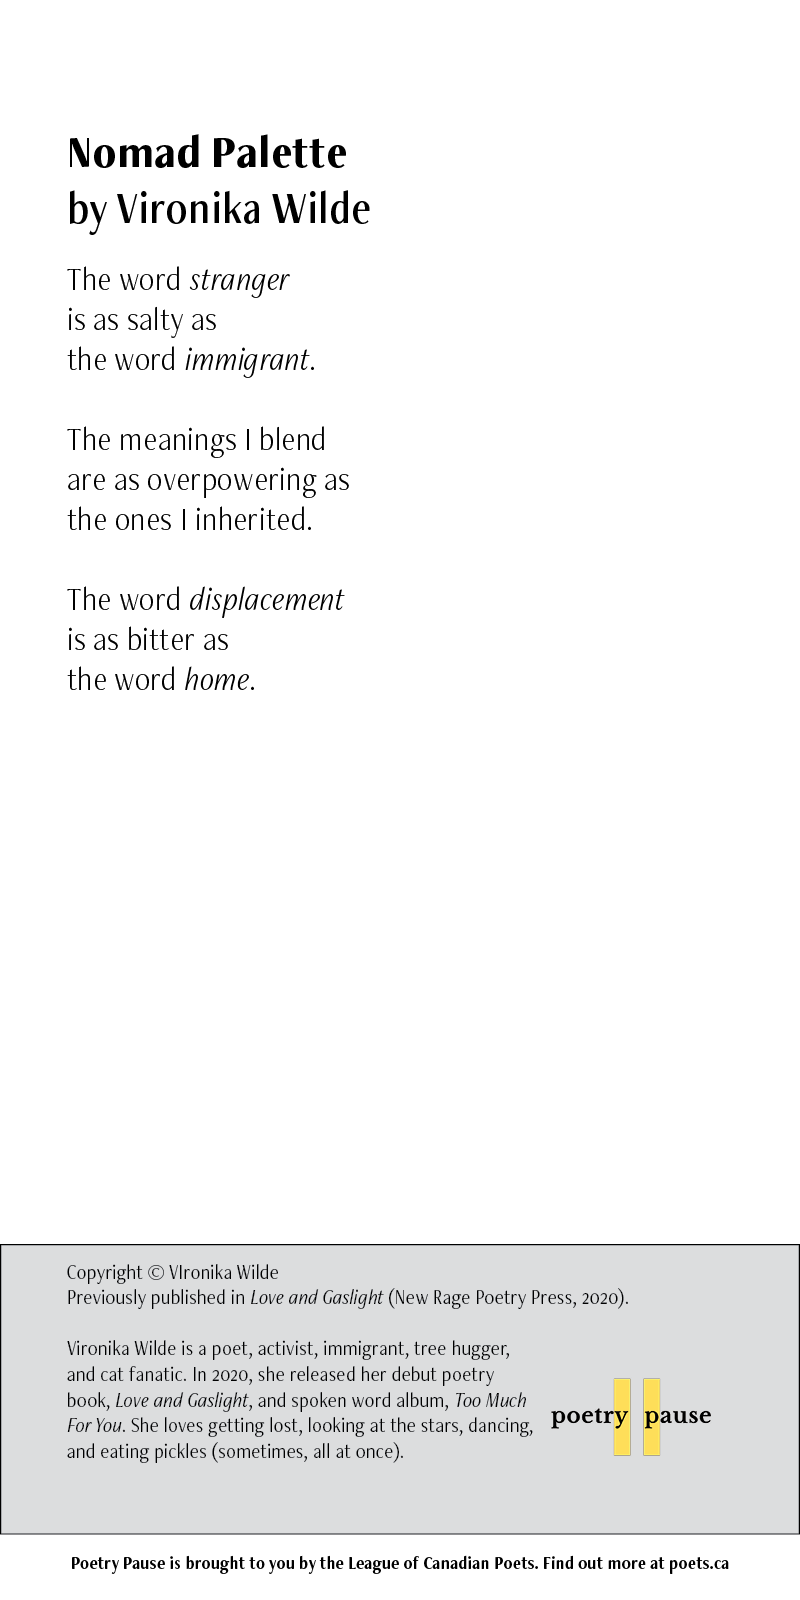 Poet name: Vironika Wilde Poem Name: Nomad Palette Poem: The word stranger is as salty as the word immigrant. The meanings I blend are as overpowering as the ones I inherited. The word displacement is as bitter as the word home. End of Poem. Credits: Copyright © VIronika Wilde Previously published in Love and Gaslight (New Rage Poetry Press, 2020). Vironika Wilde is a poet, activist, immigrant, tree hugger, and cat fanatic. In 2020, she released her debut poetry book, Love and Gaslight, and spoken word album, Too Much For You. She loves getting lost, looking at the stars, dancing, and eating pickles (sometimes, all at once).